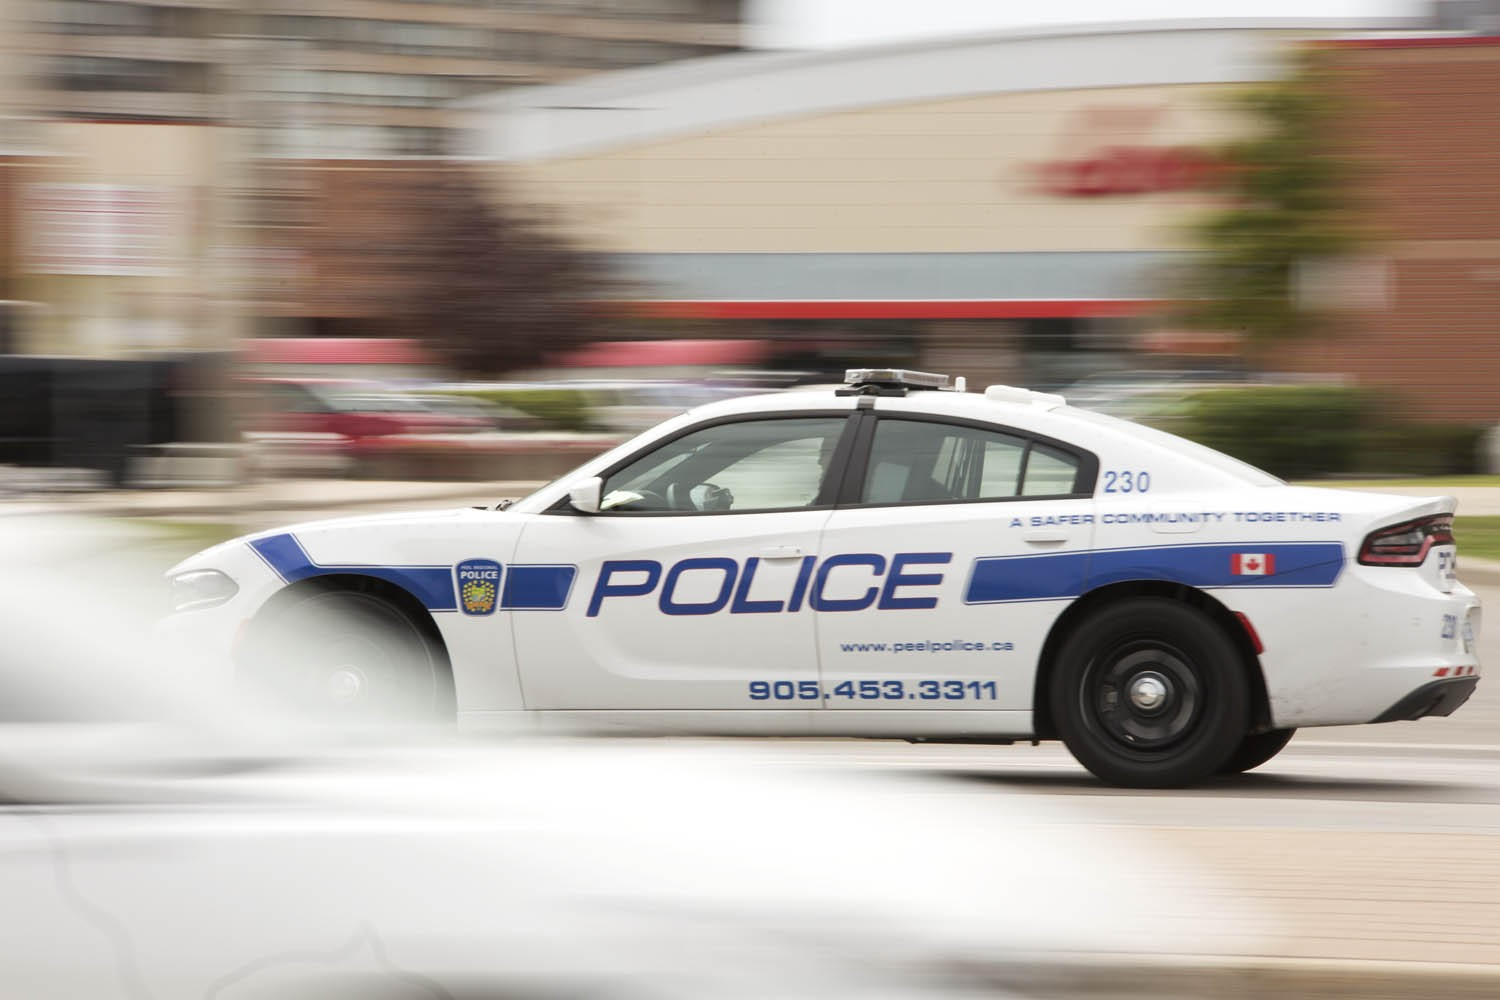 Peel Police close out a violent year, but are statistical jumps as troublesome as they appear?